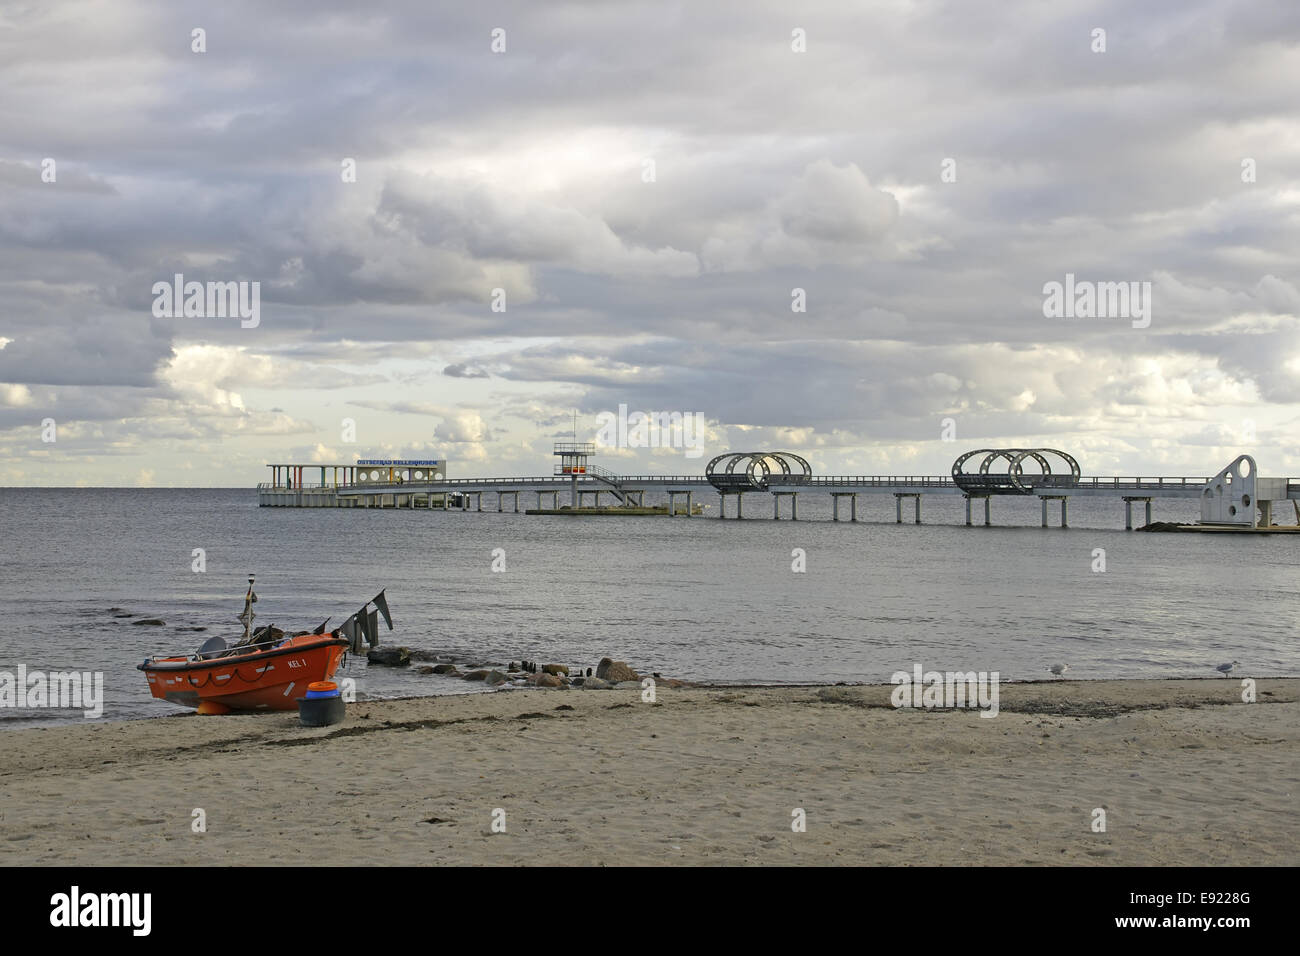 Pier in Kellenhusen, Baltic Sea, Germany Stock Photo